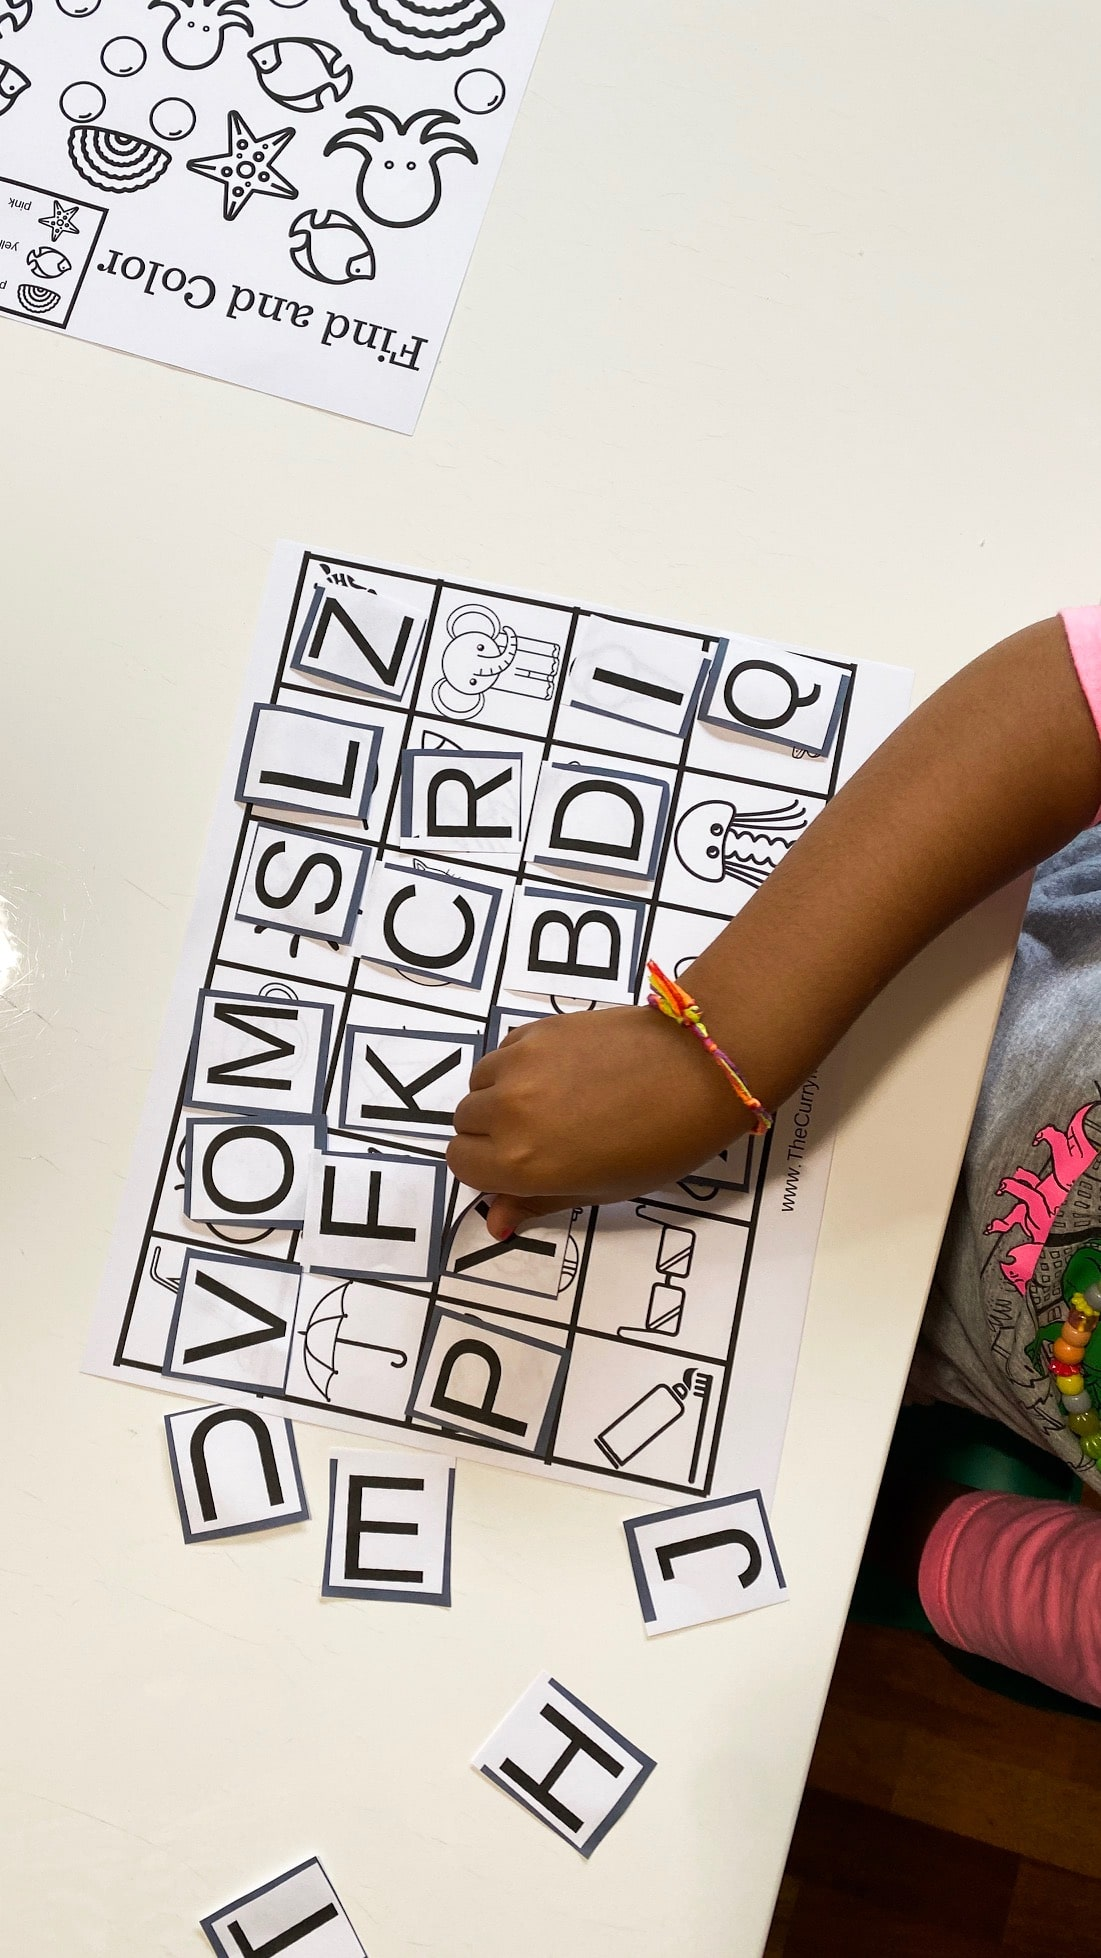 ABC recognition game for early childhood education